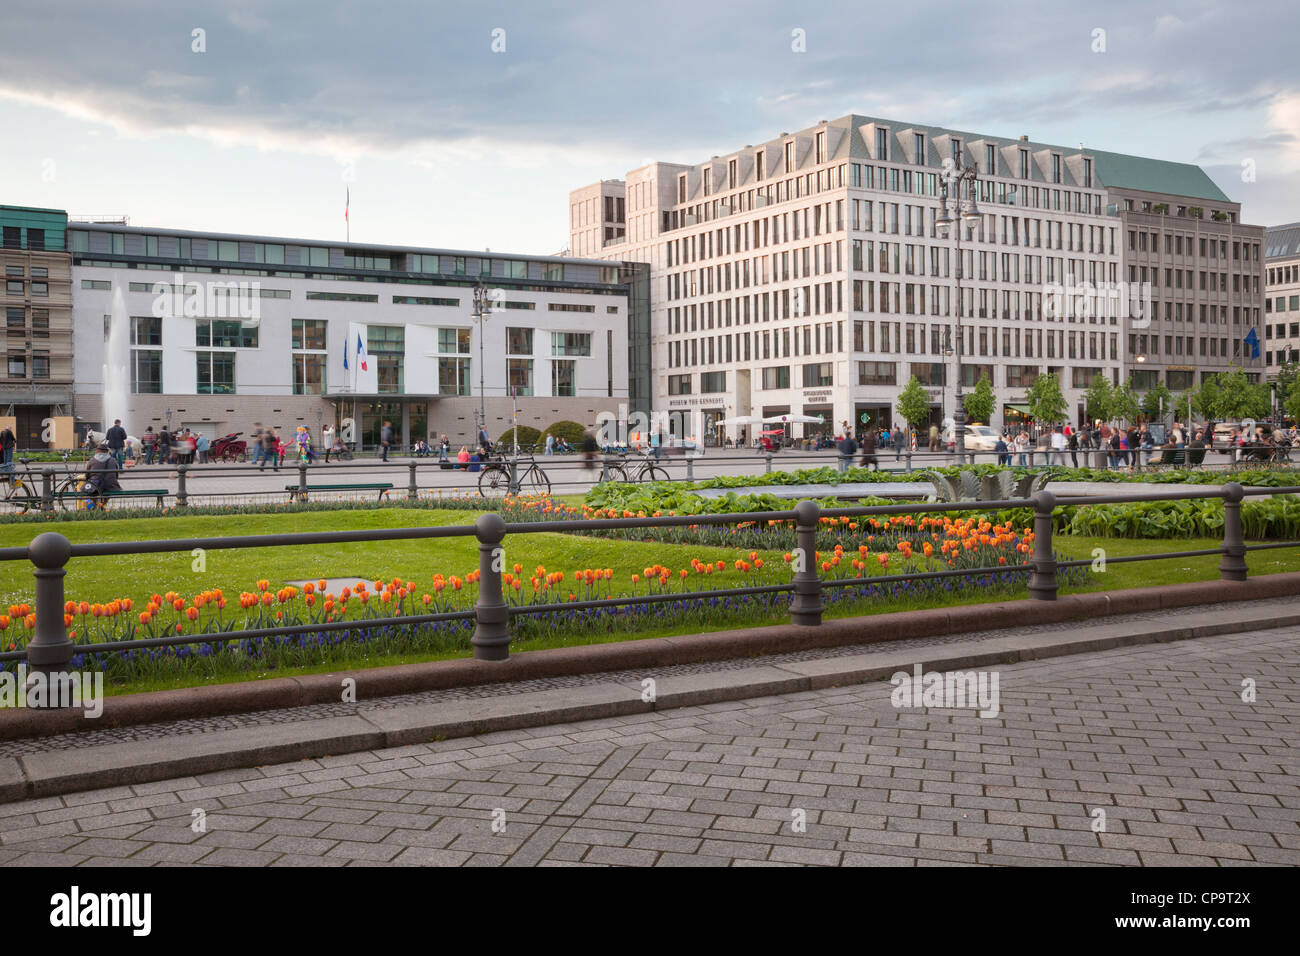 Pariser Platz with French Embassy and Museum the Kennedys, Berlin, Germany - Stock Image